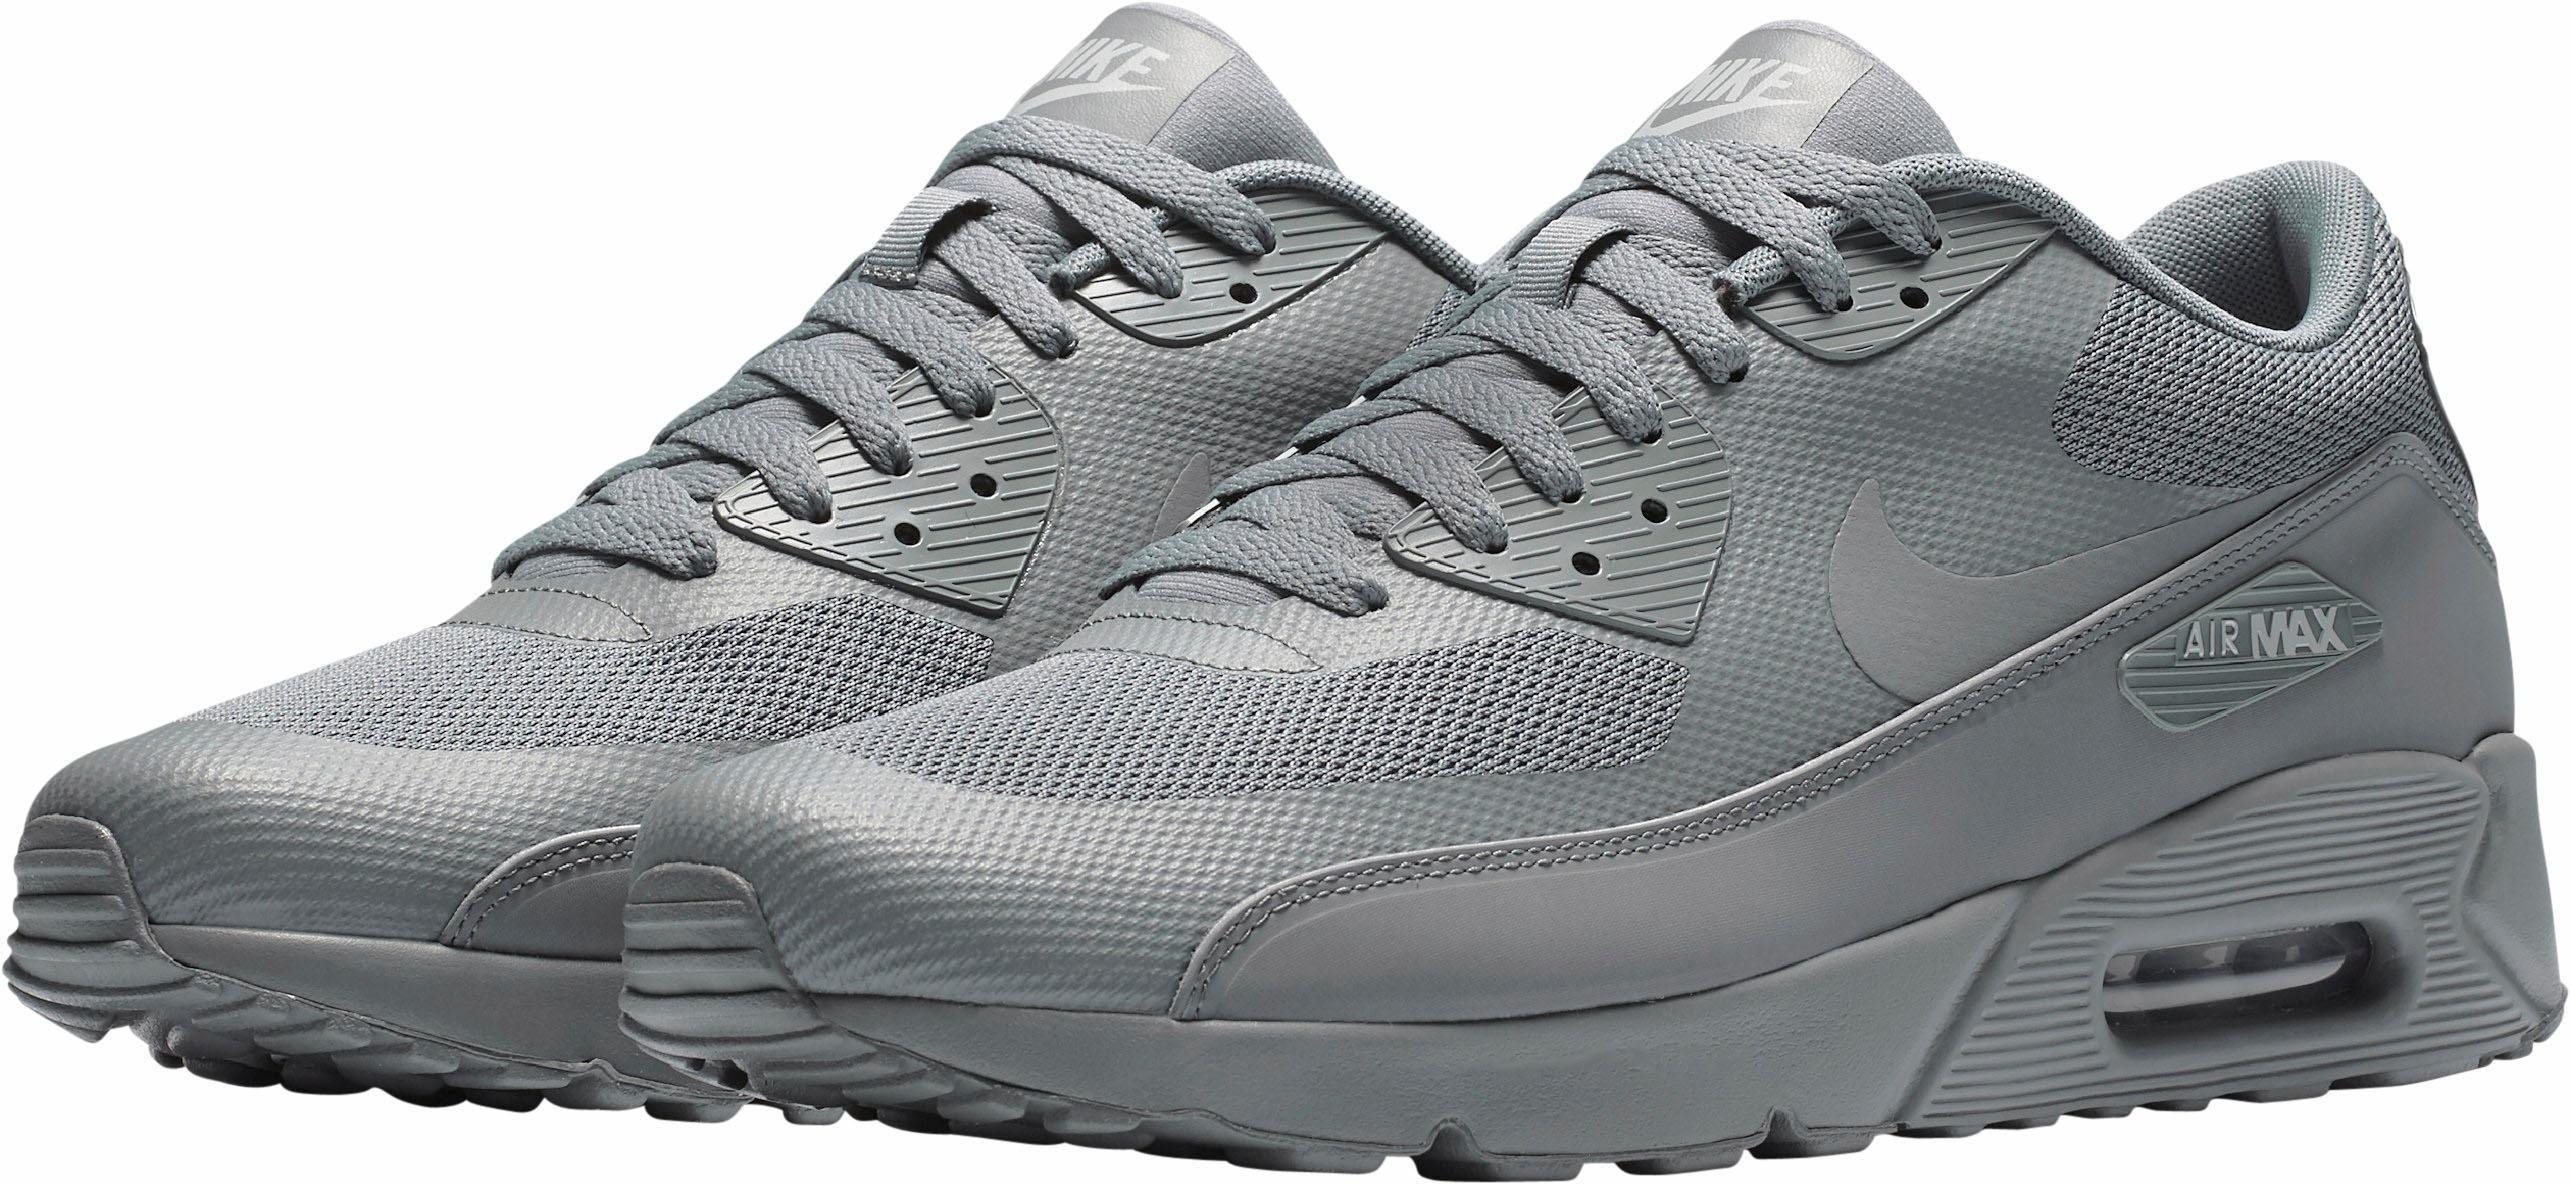 newest 86cfe 12a14 Afbeeldingsbron  Nike Sportswear sneakers »AIR MAX 90 ULTRA 2.0 ESSENTIAL«